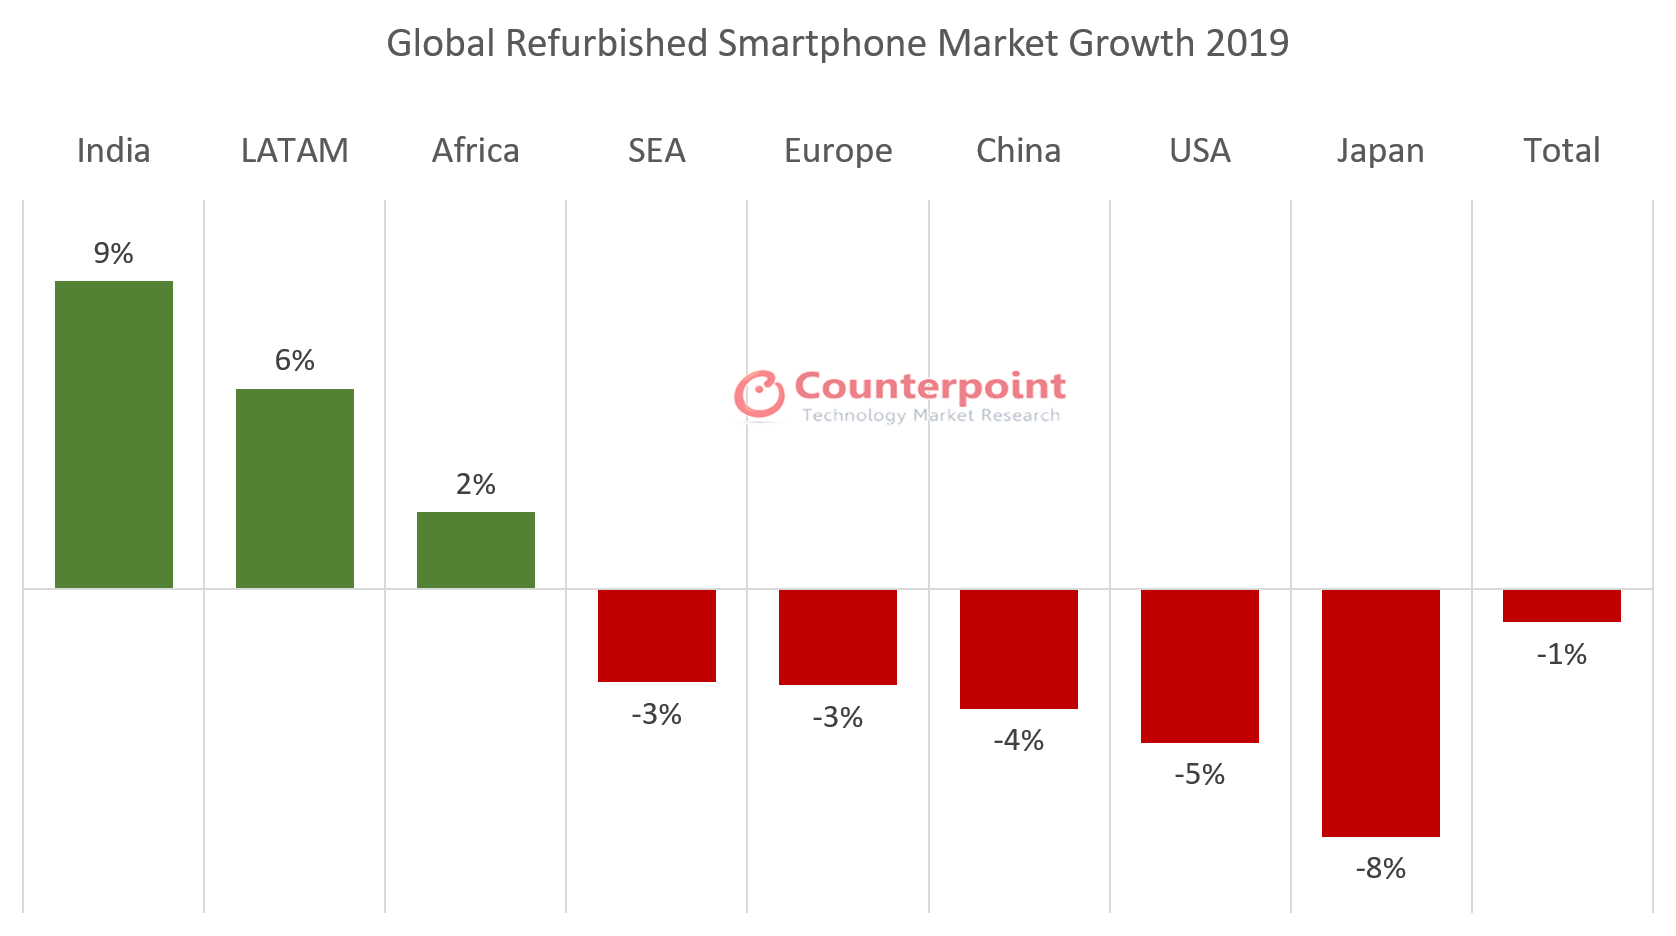 Counterpoint: Global Refurbished Smartphone Market Declines 1% in 2019